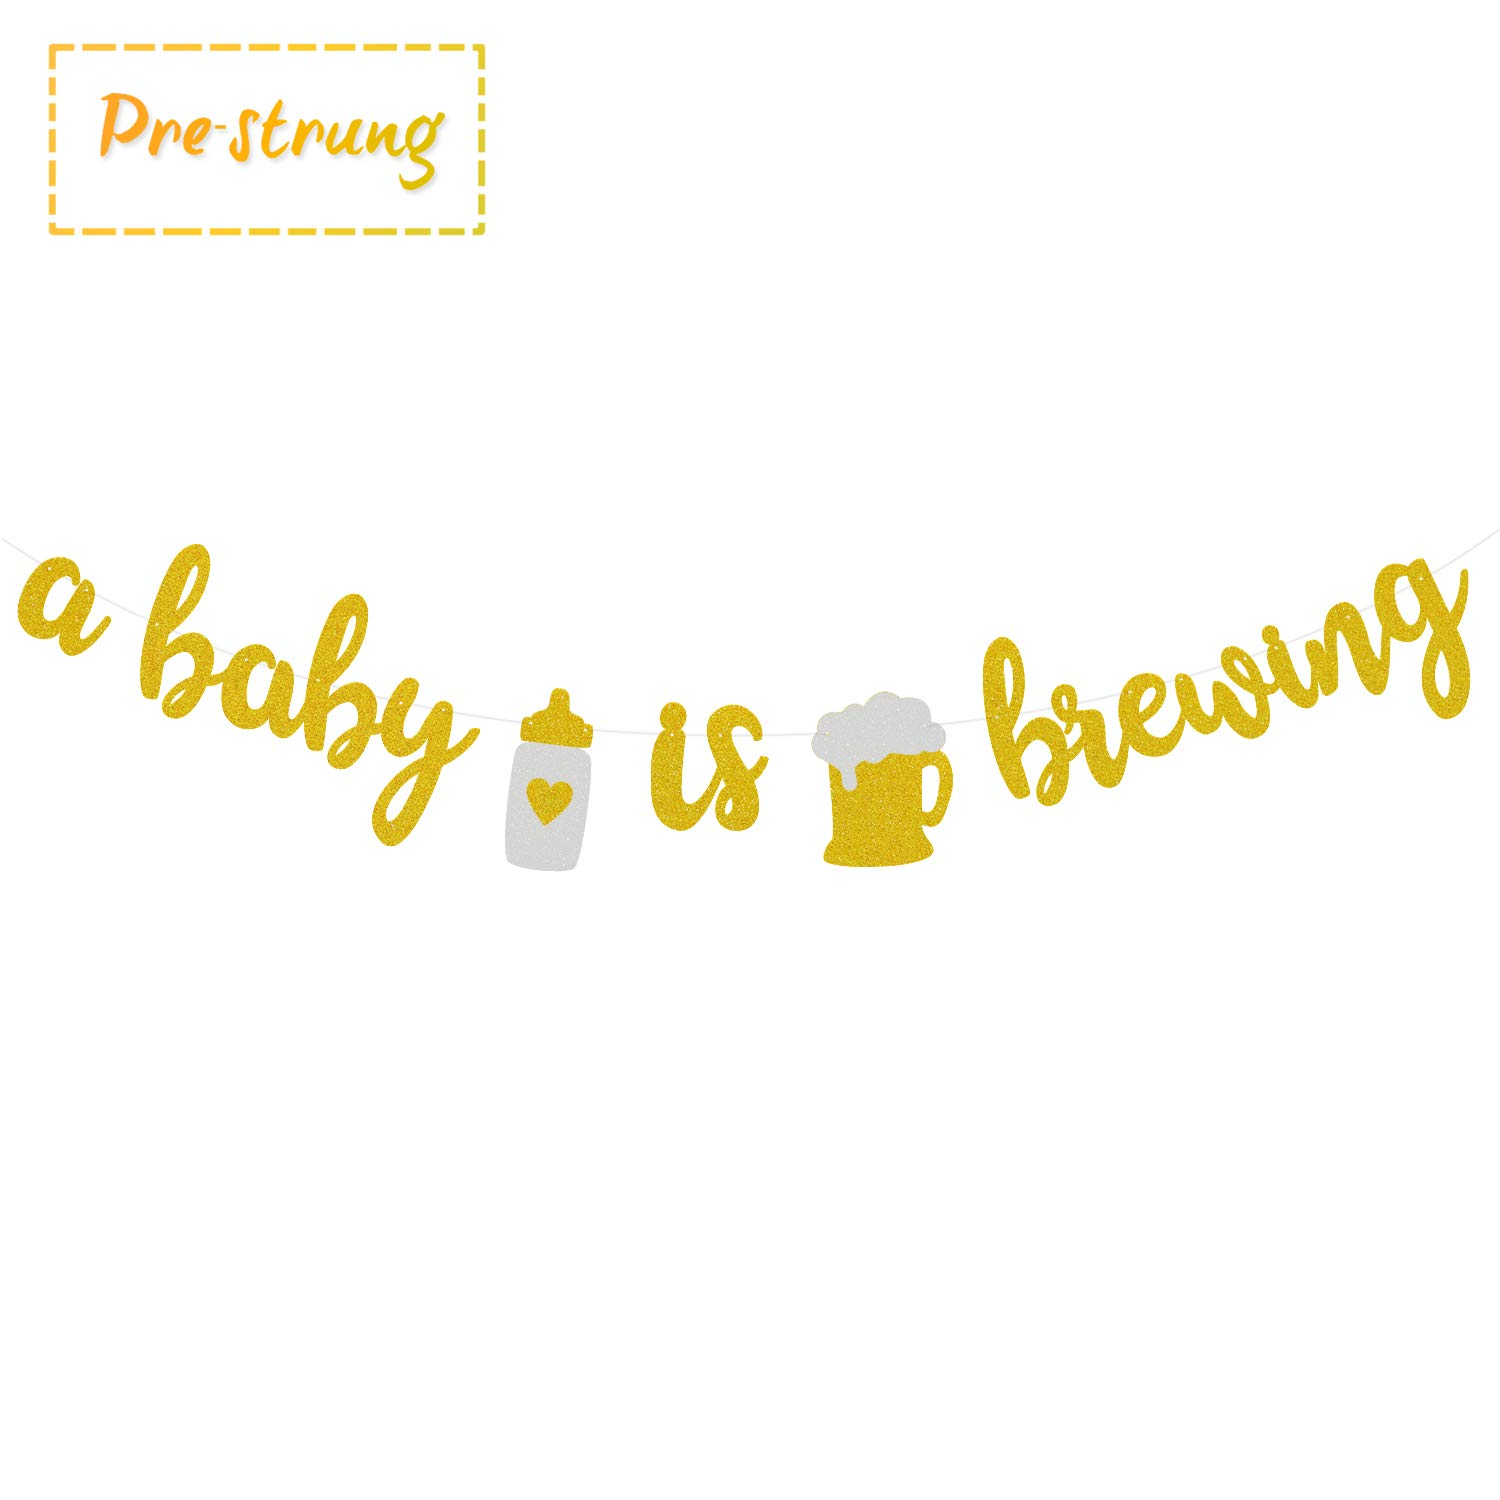 Diapers clipart beer. A baby is brewing